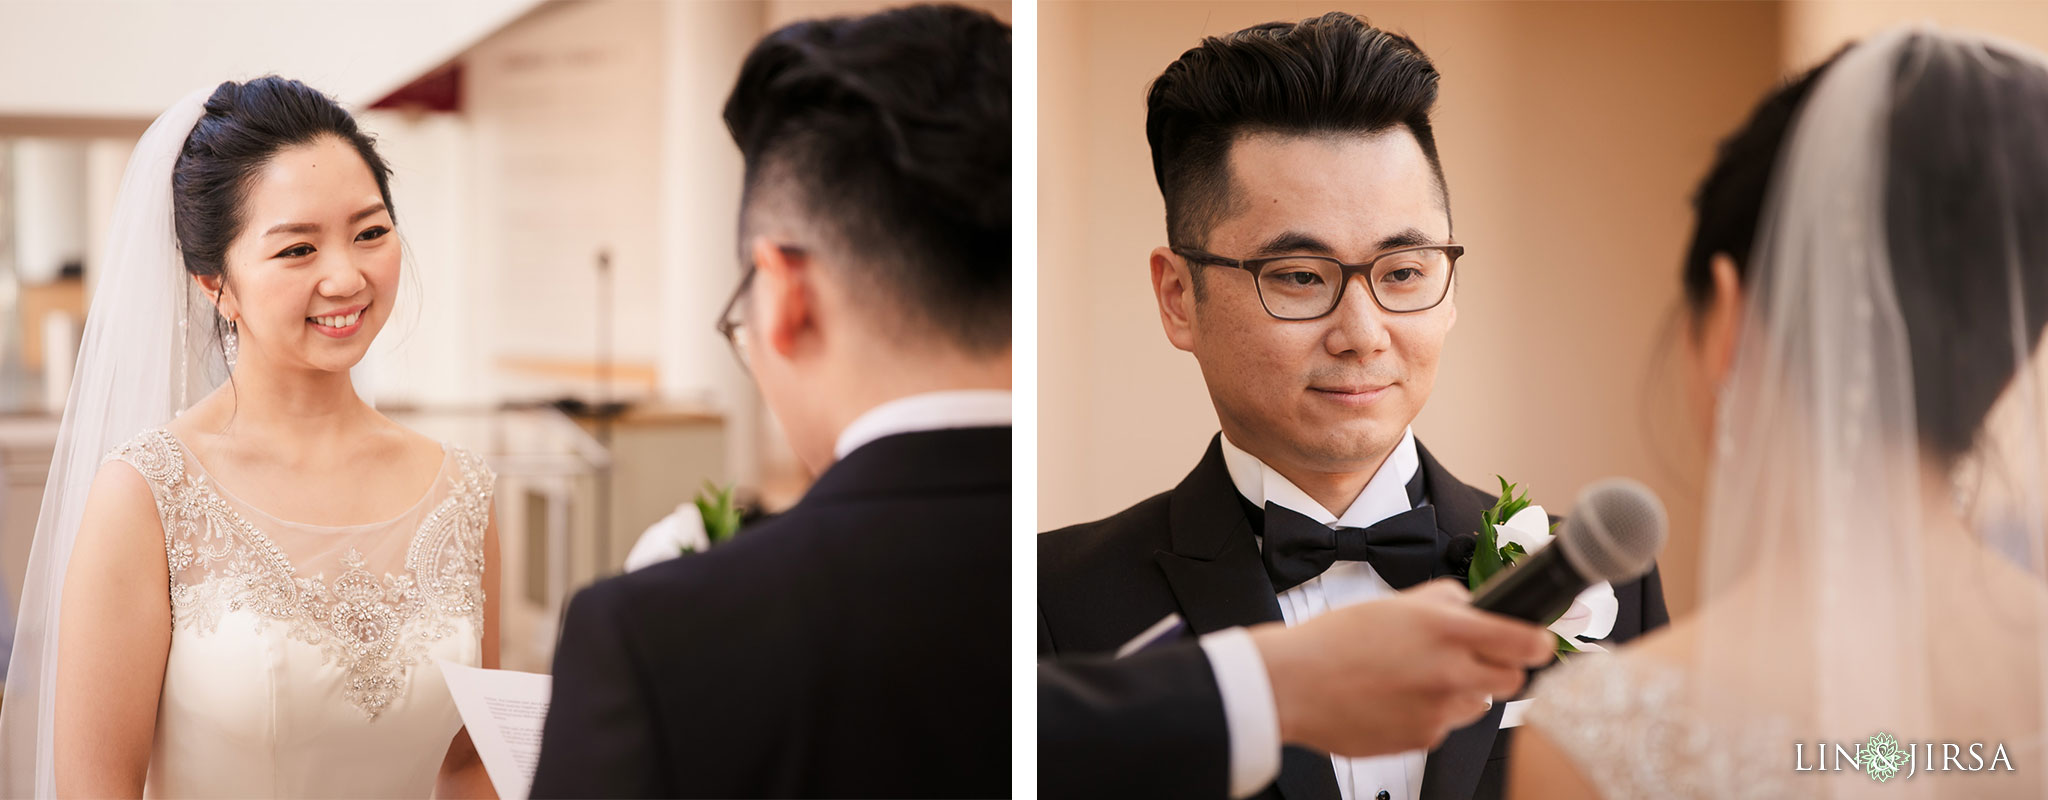 25 segerstrom center for the arts costa mesa wedding photography